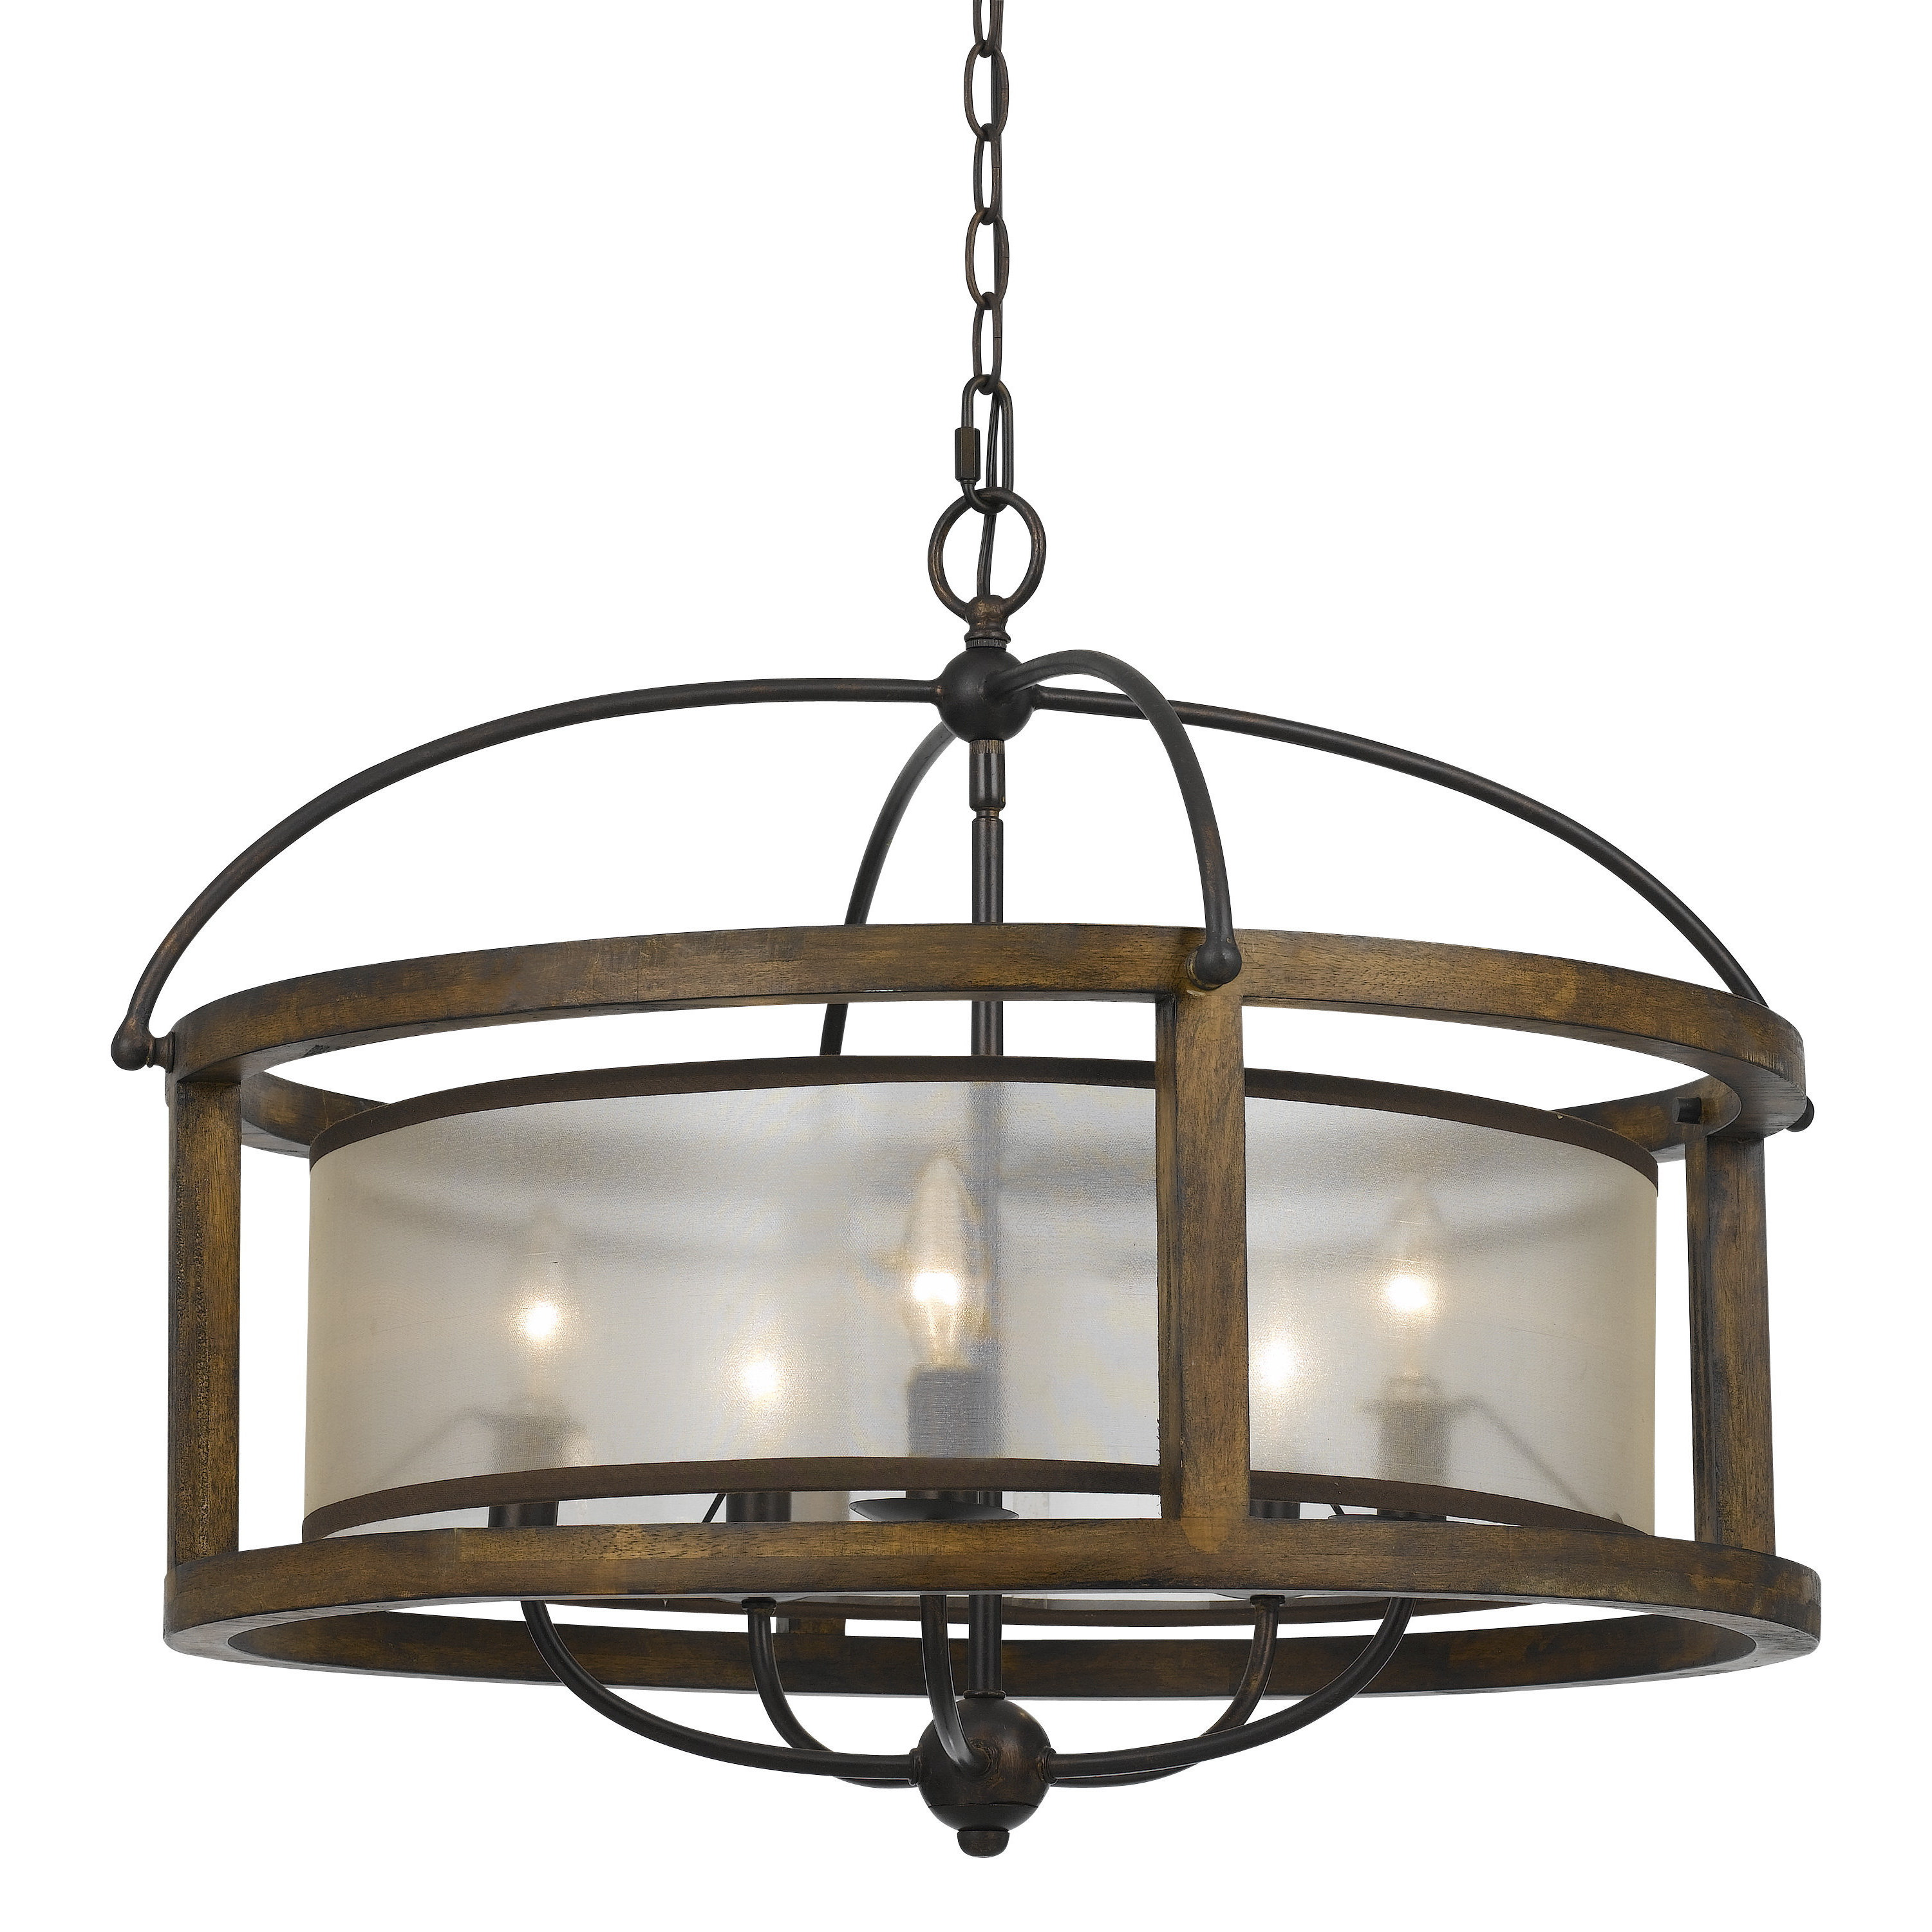 Mission style metal and wood 5 light chandelier